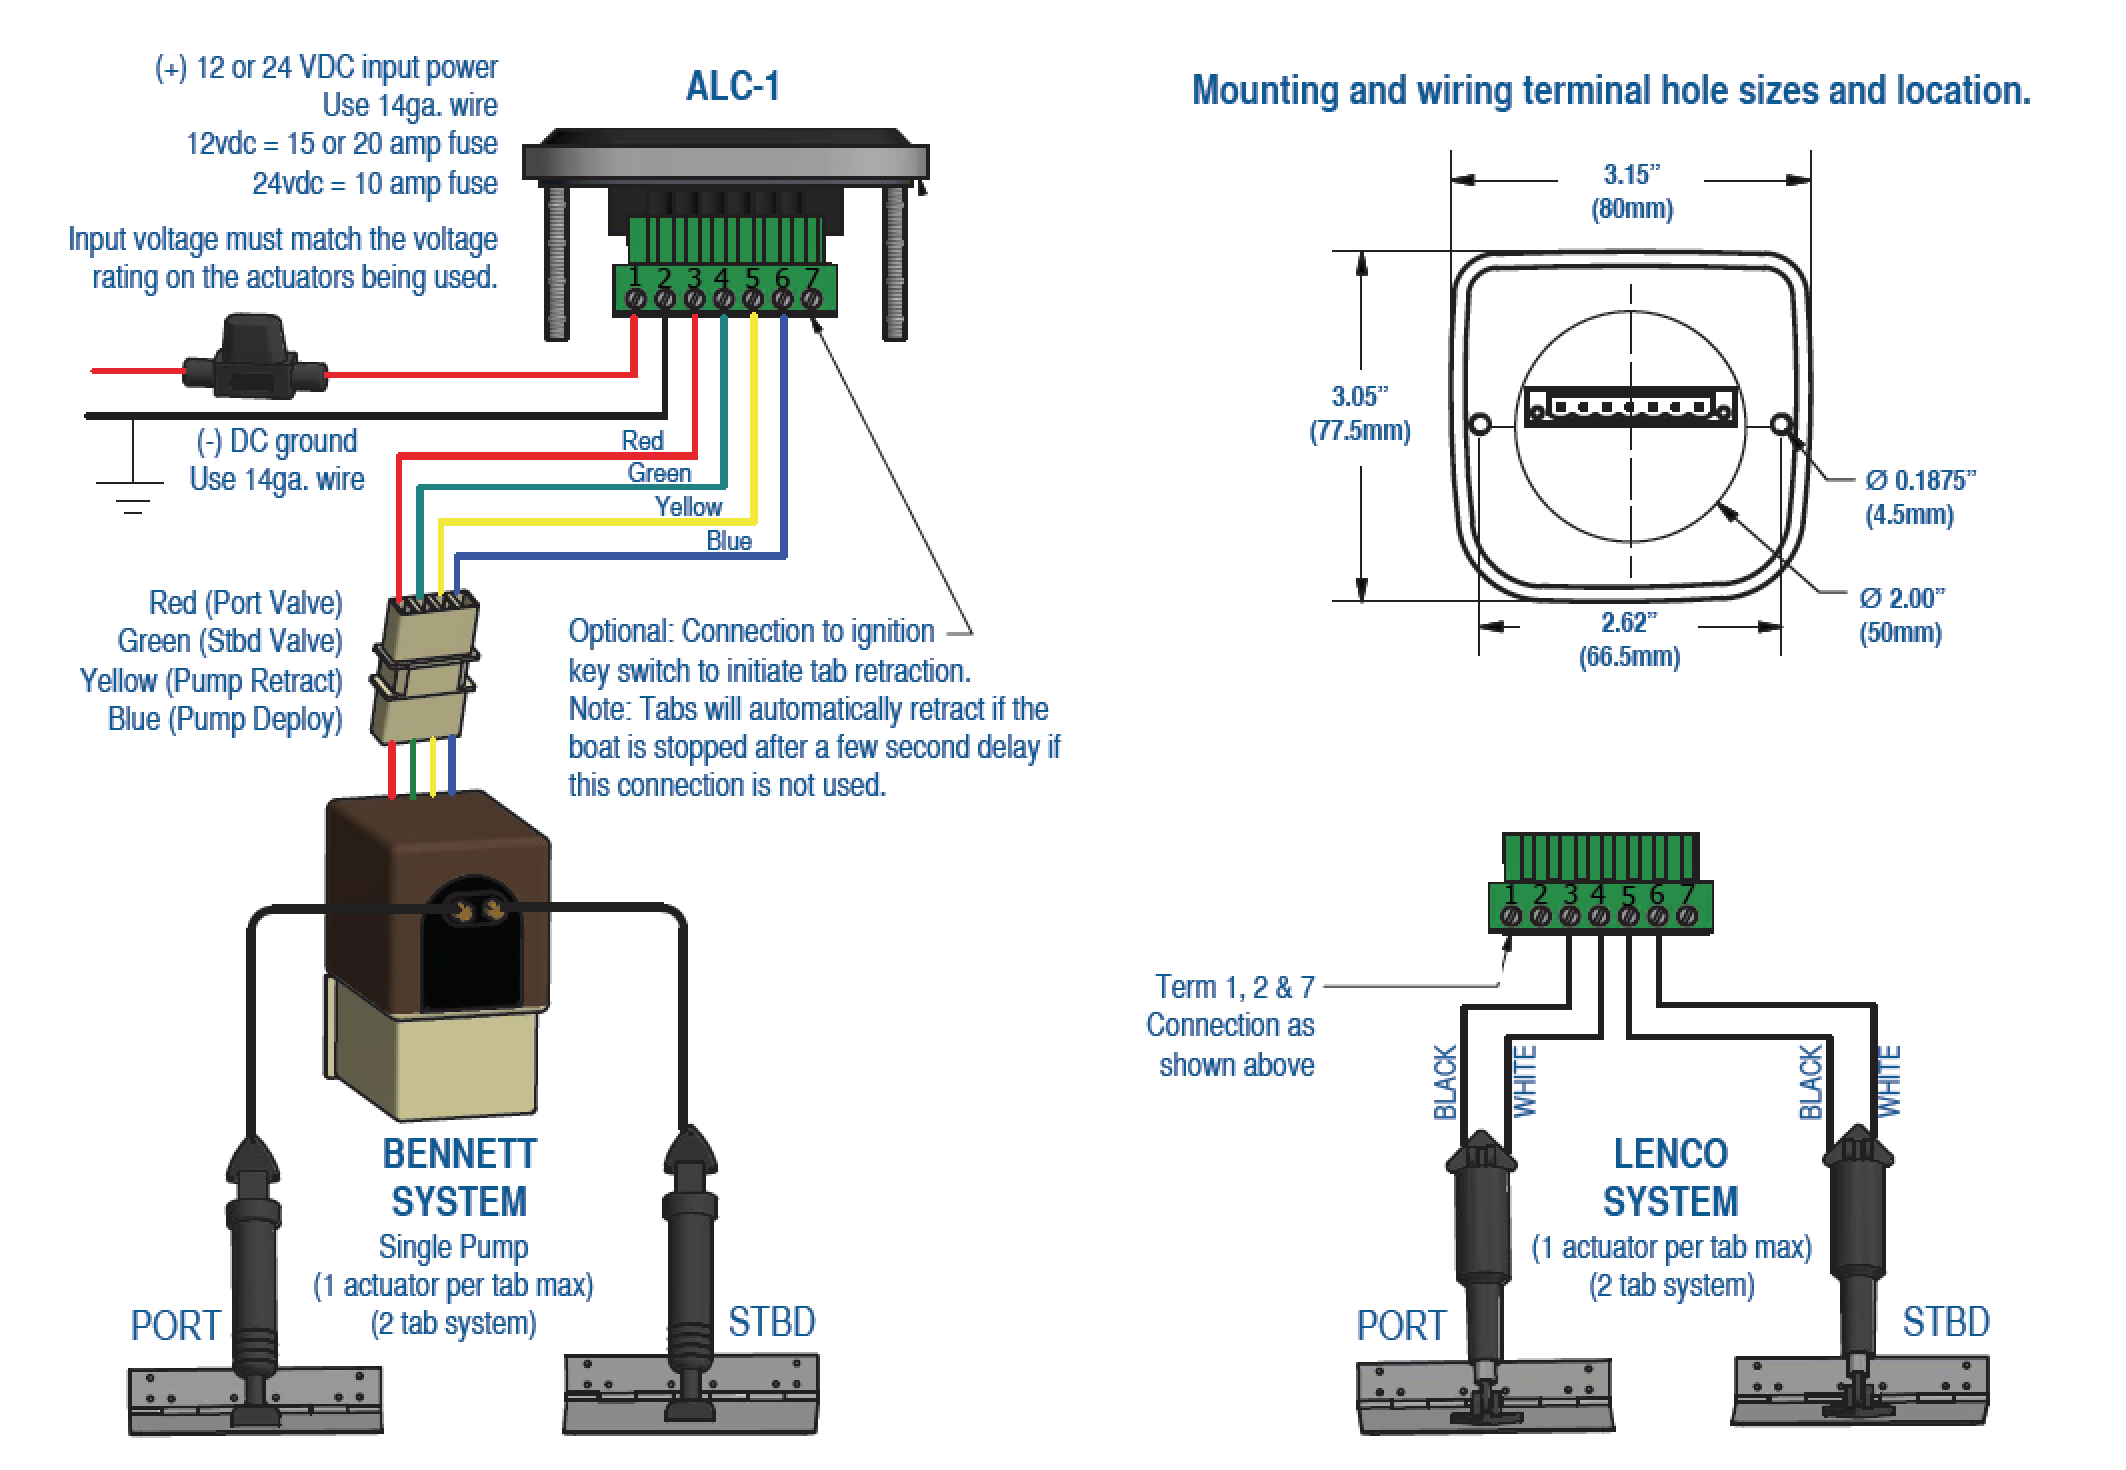 alc bennet lenco systems trim tab switch wiring diagram 8 port switch wiring diagrams bennett trim tabs wiring diagram at alyssarenee.co